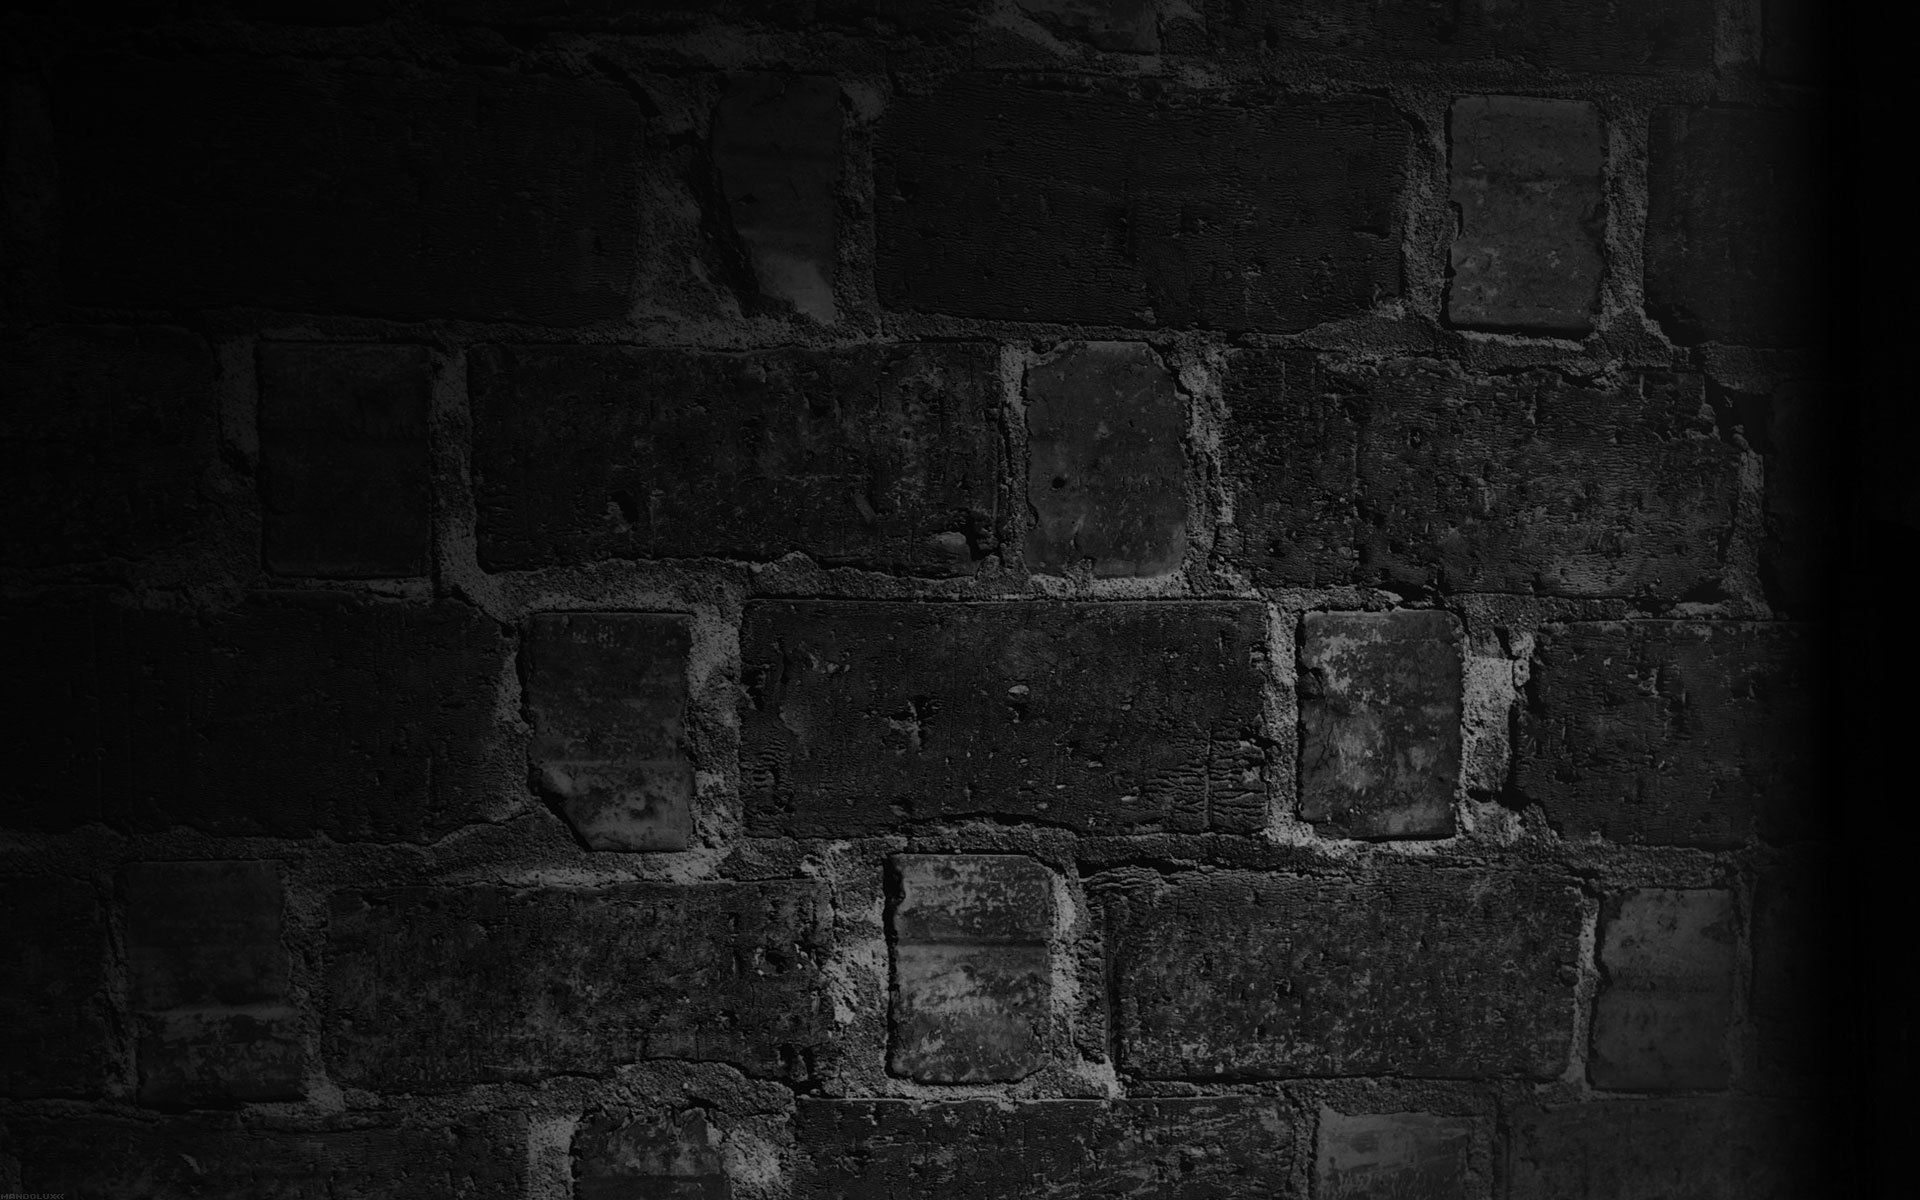 Download wallpaper wall brick texture shadow black and for Black and white wallpaper for walls